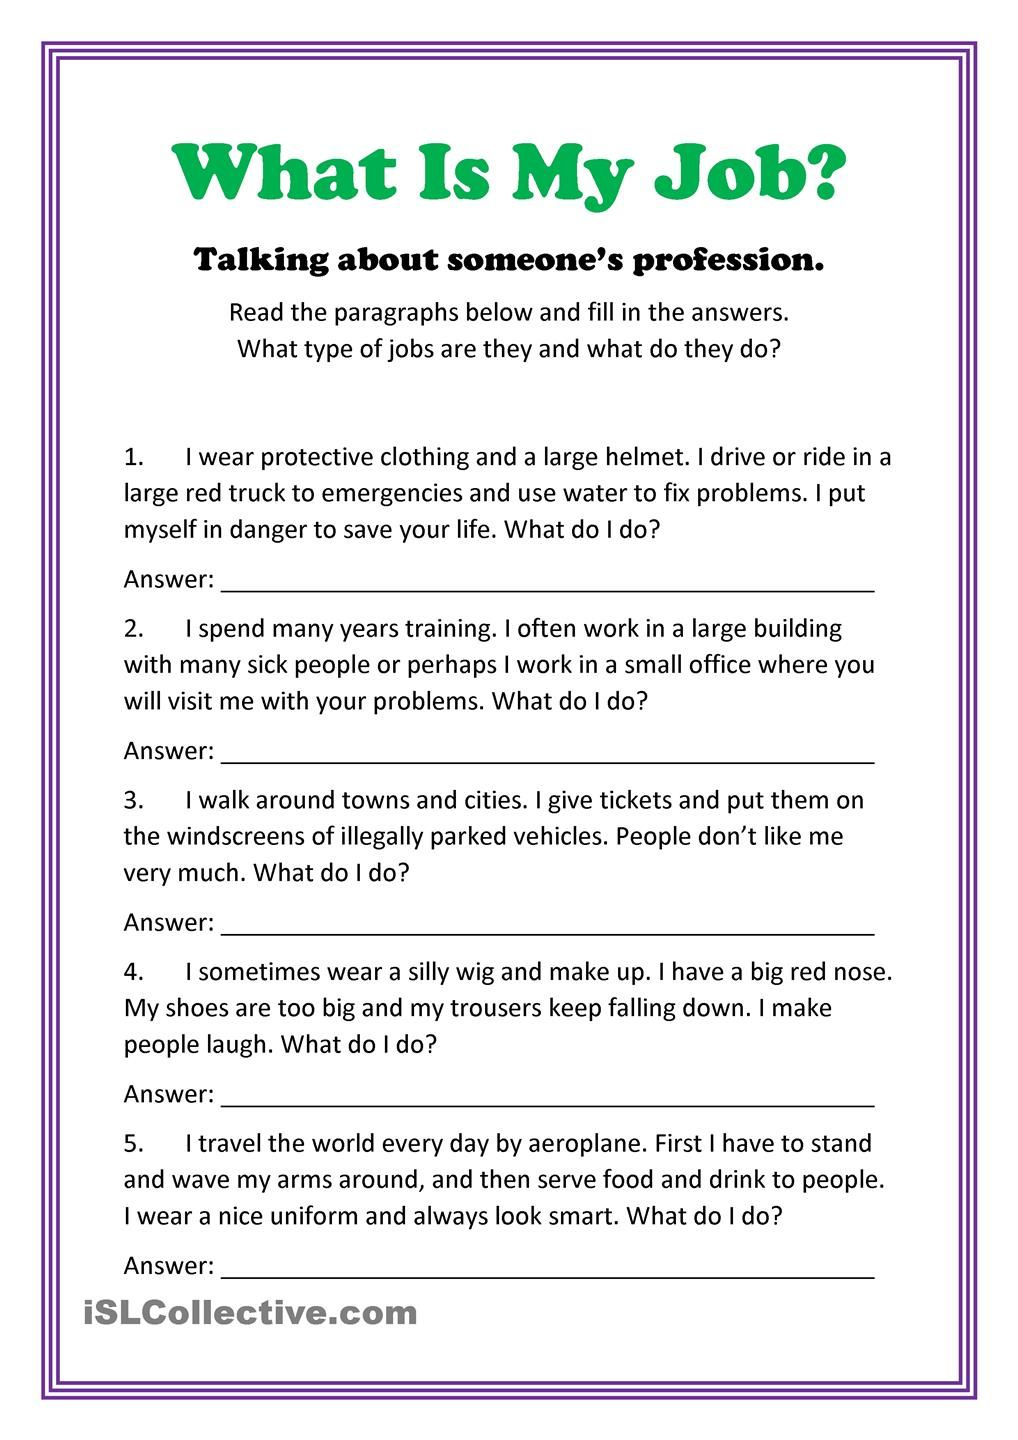 worksheet Learning English Worksheets what is my job pinterest english worksheets and newsenglish lessonslearn